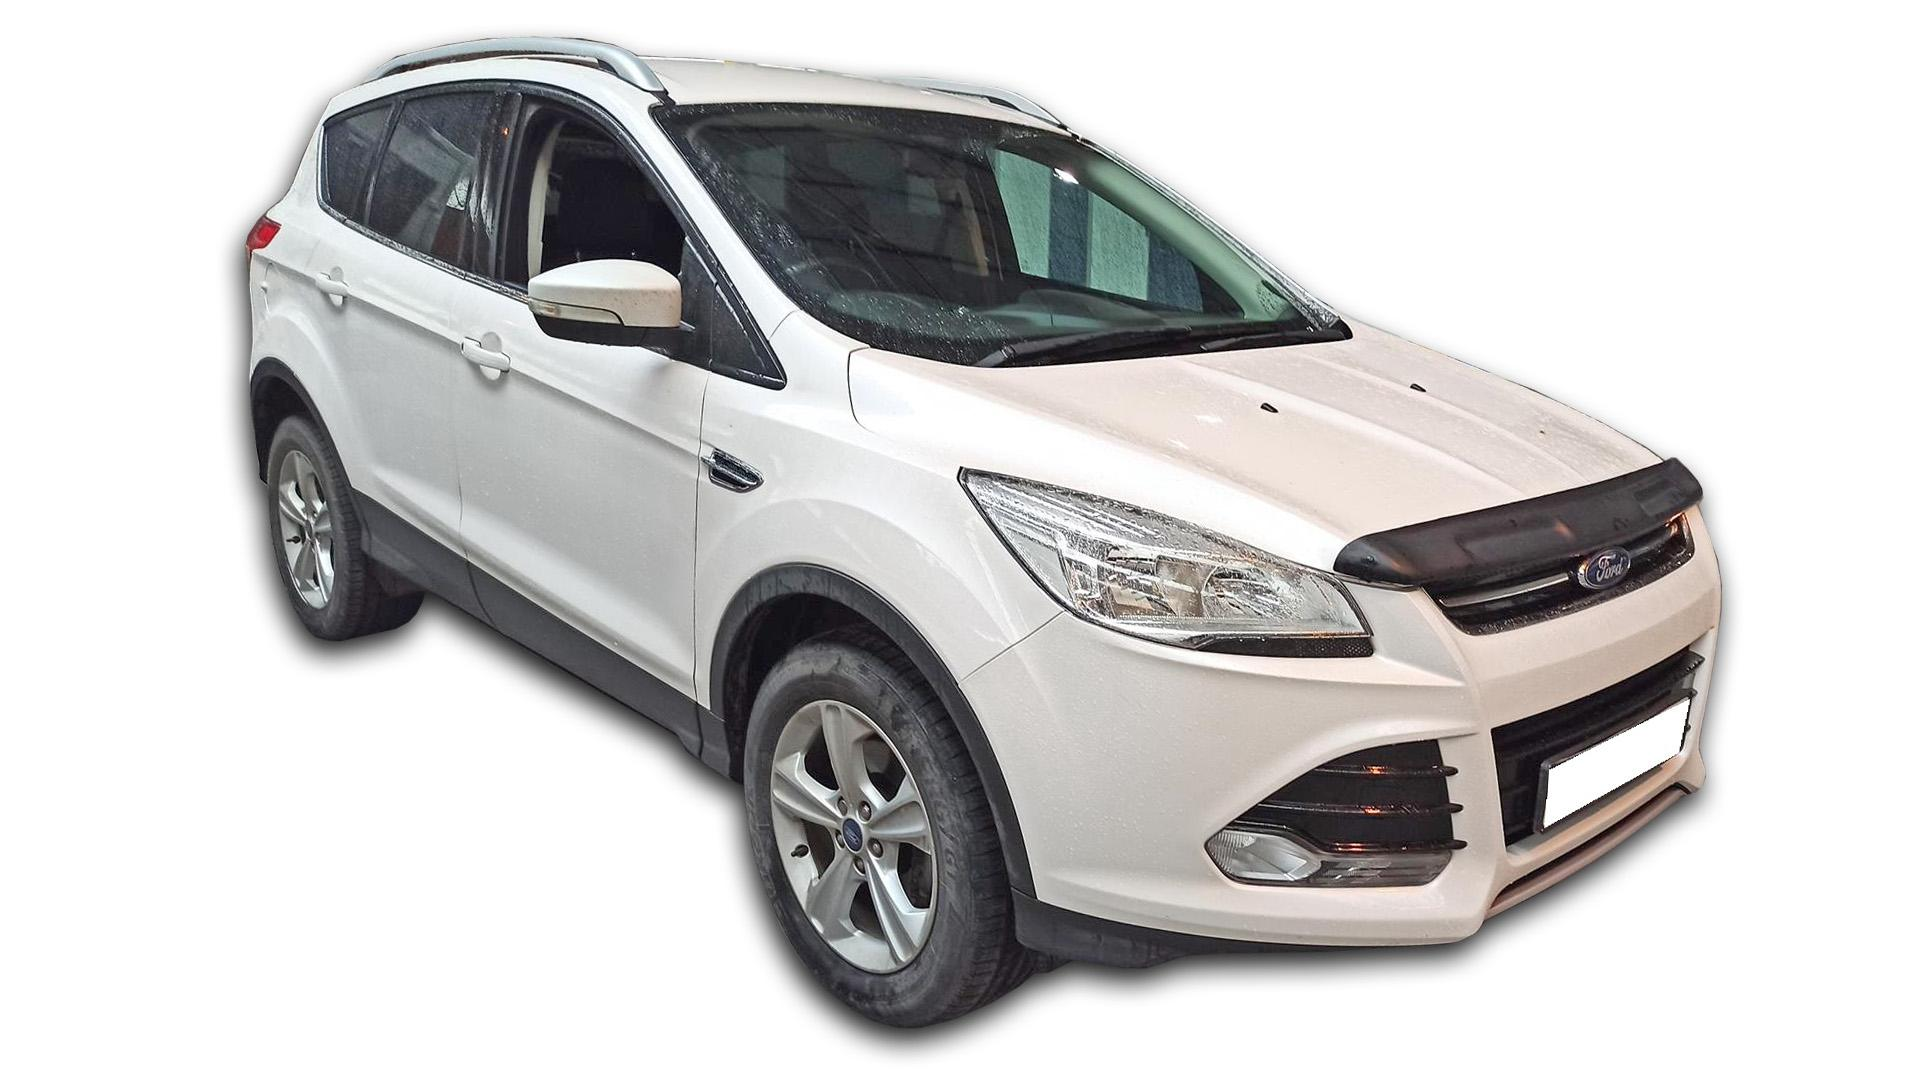 Ford Kuga 1.5 Ecoboost Ambient